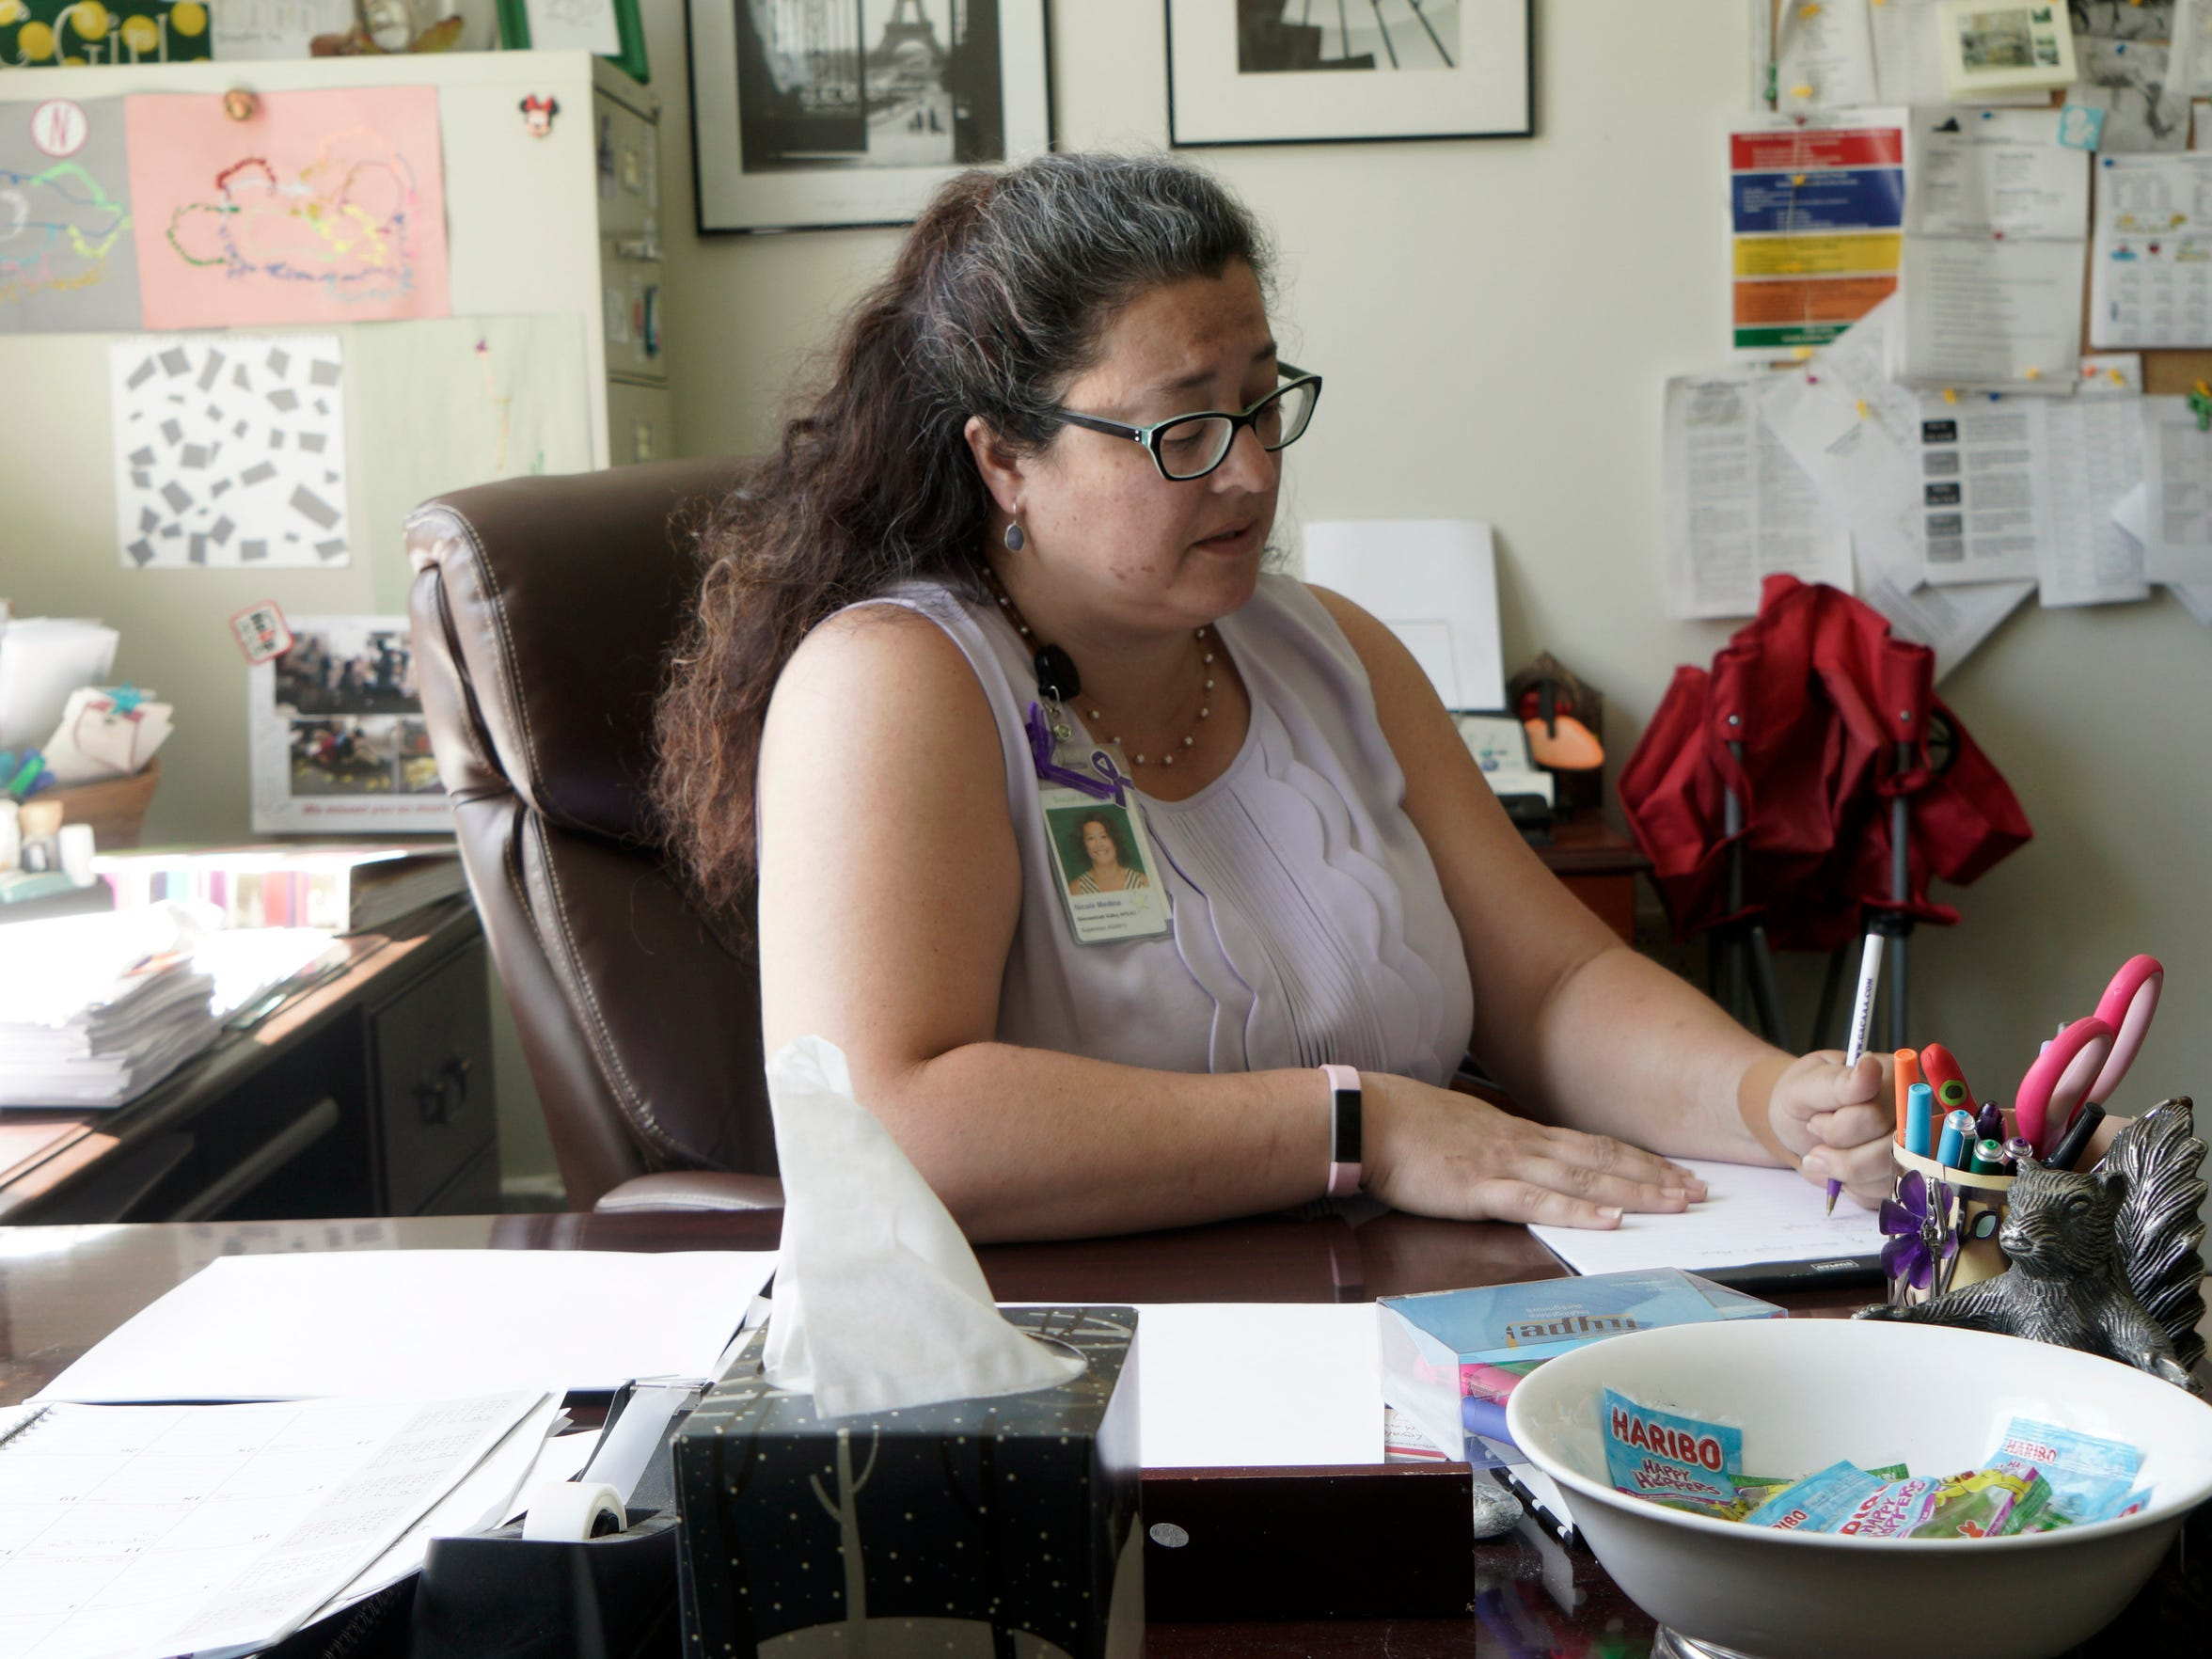 Nicole Medina sees a lot of cases of elder abuse in her role as as family services supervisor for Adult Protective Services with the Shenandoah Valley Department of Social Services. She is photographed in her office in Waynesboro on June 5, 2018. Medina also serves as vice president for the Greater Augusta Coalition Against Adult Abuse.